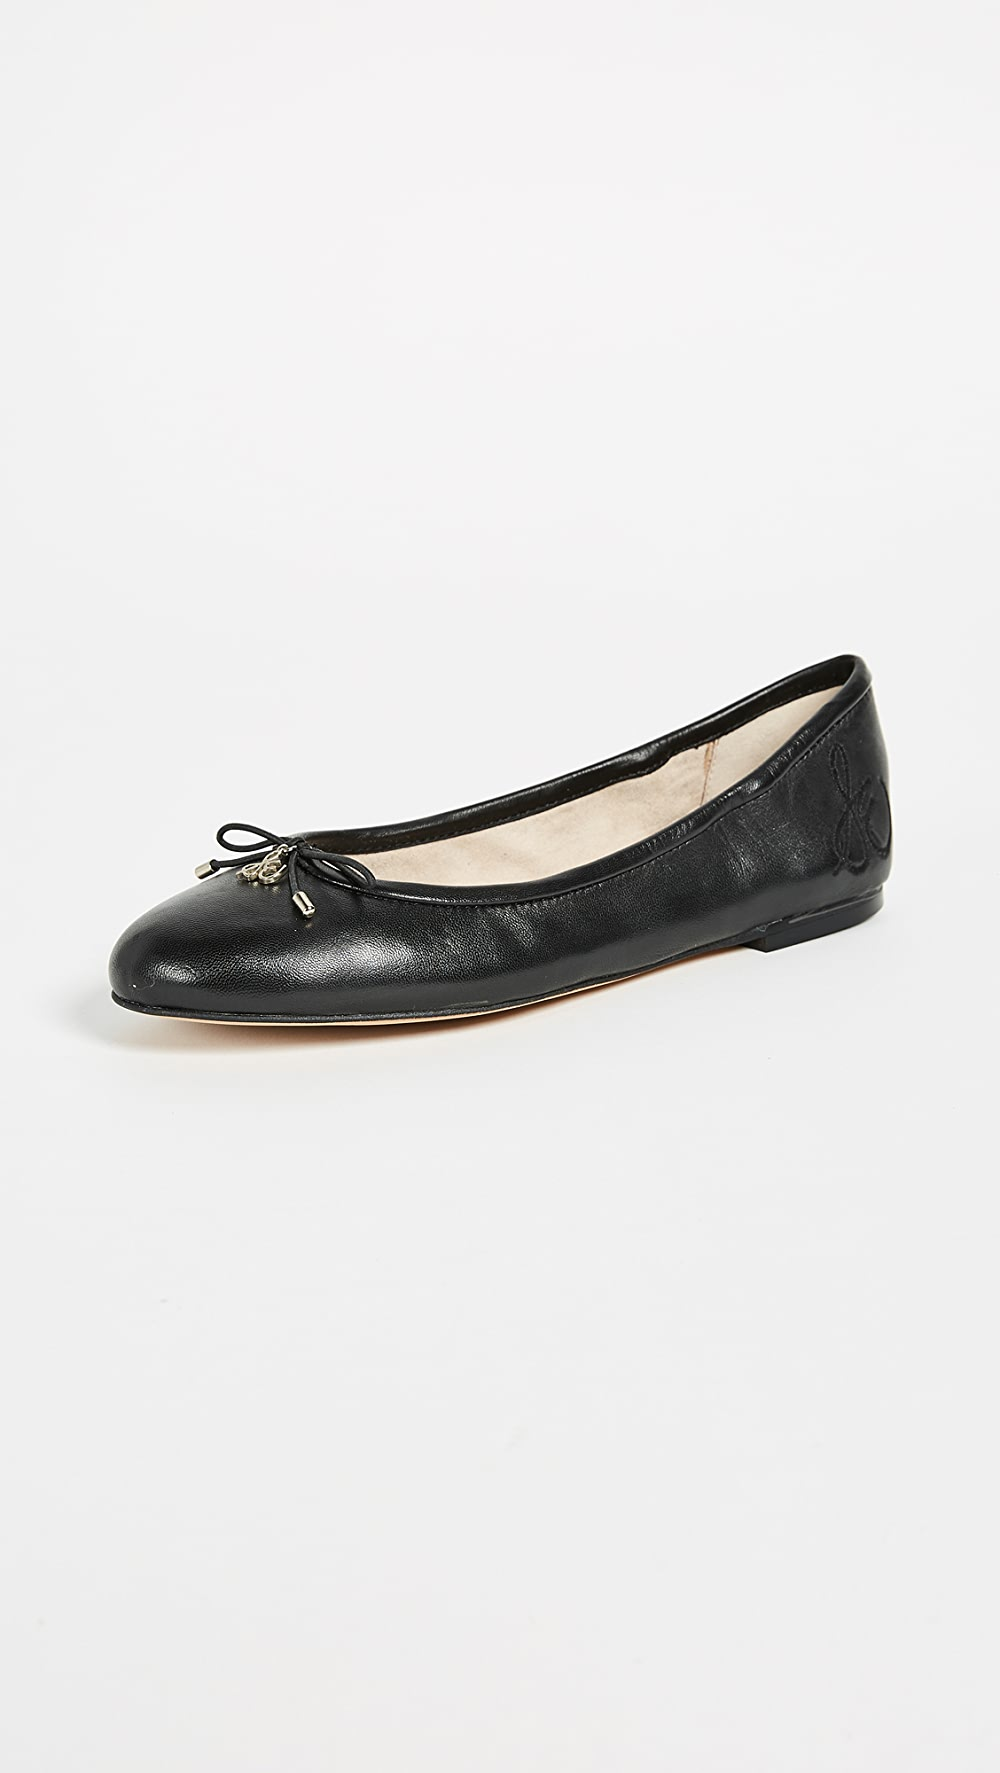 Amiable Sam Edelman - Felicia Ballet Flats Sophisticated Technologies